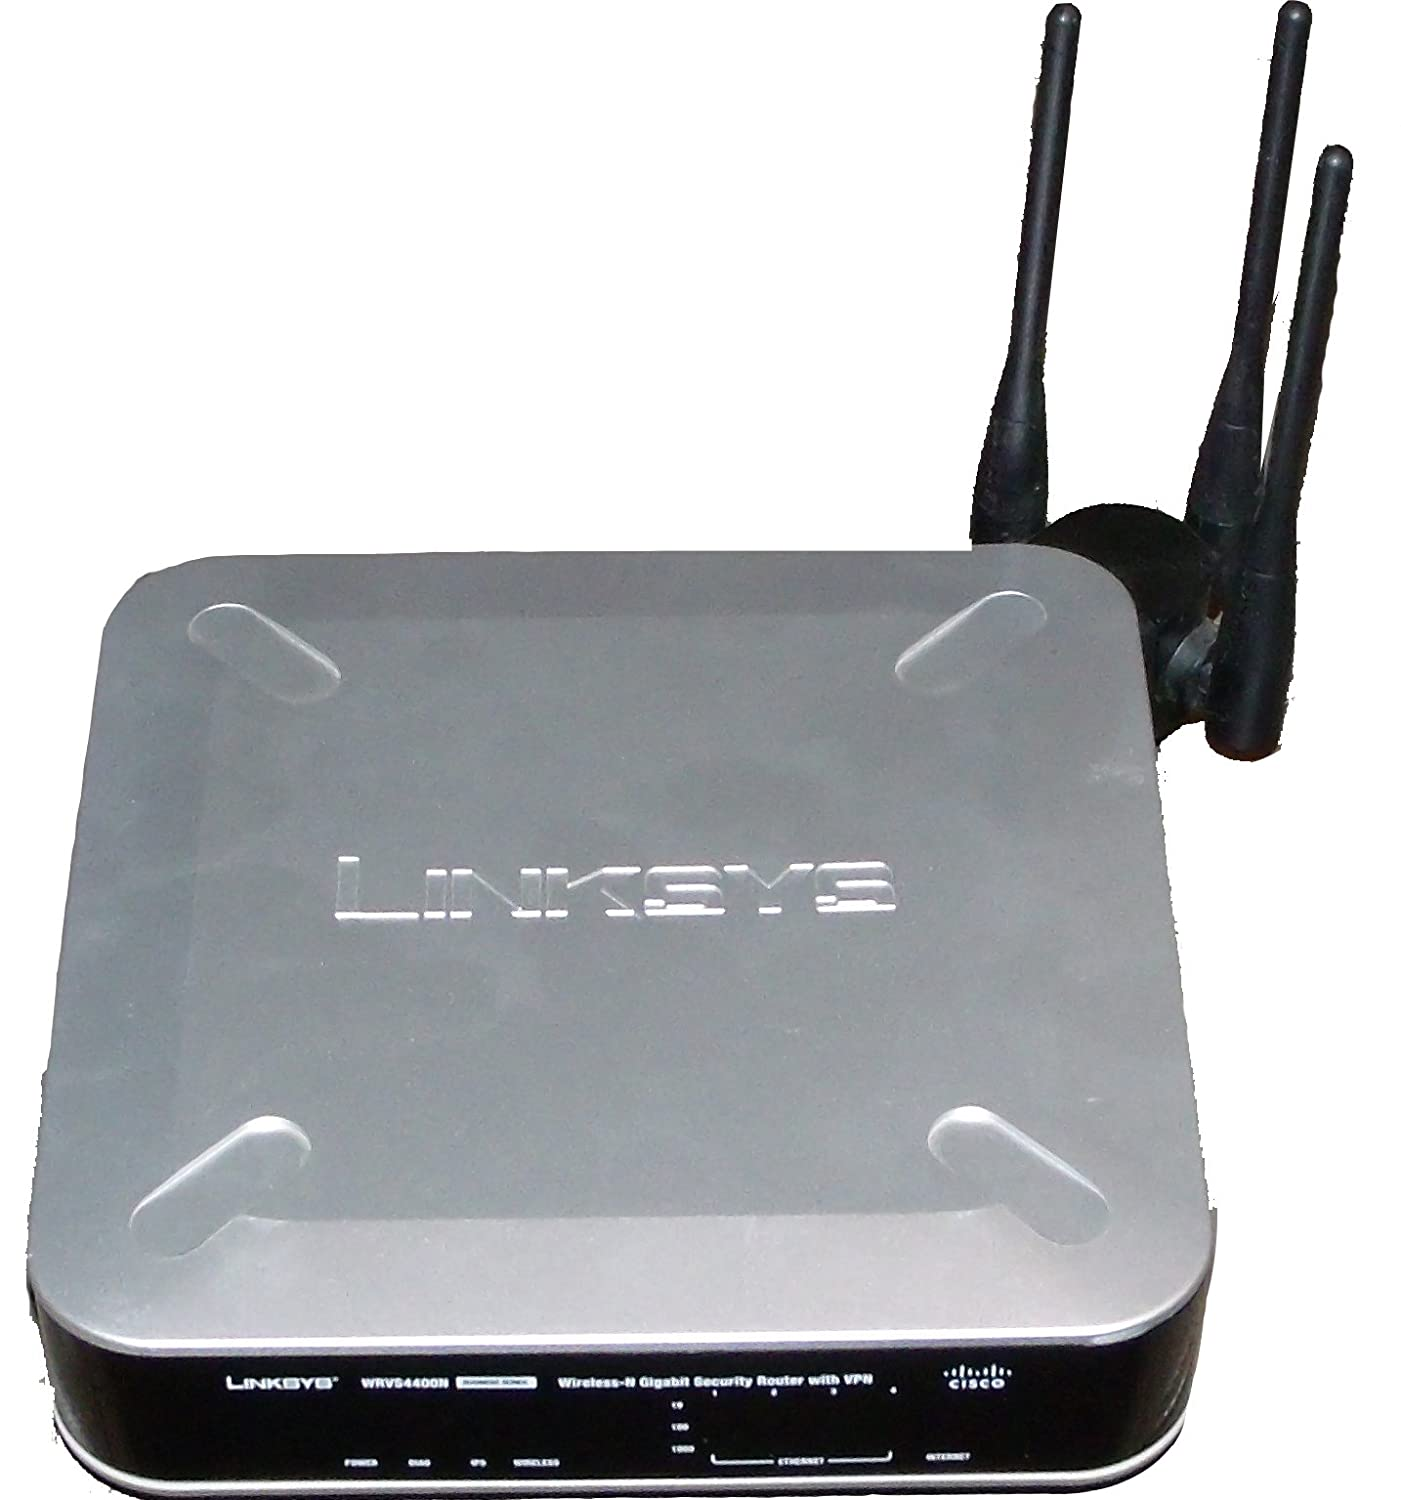 Amazon.com: Cisco - WRVS4400N Wireless-N Gigabit Security Router ...